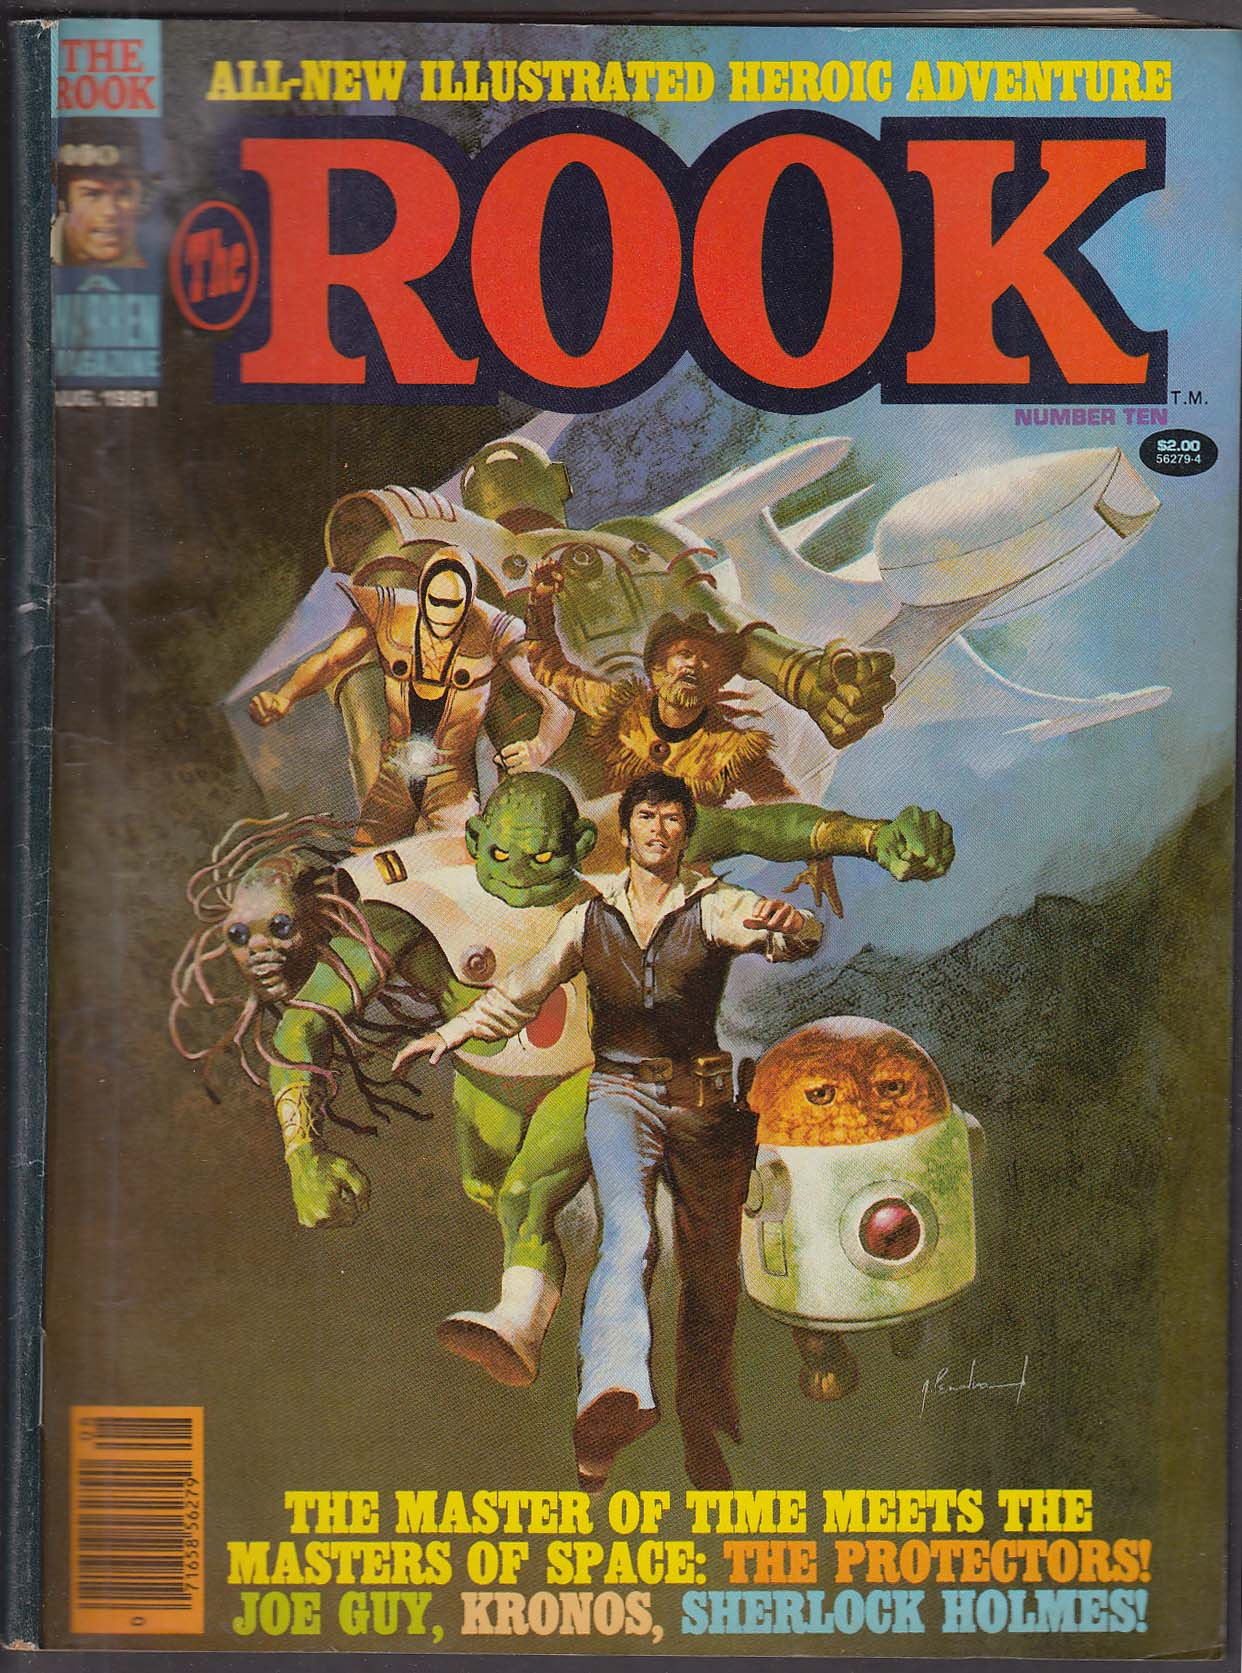 The ROOK #10 Warren comic magazine 8 1981